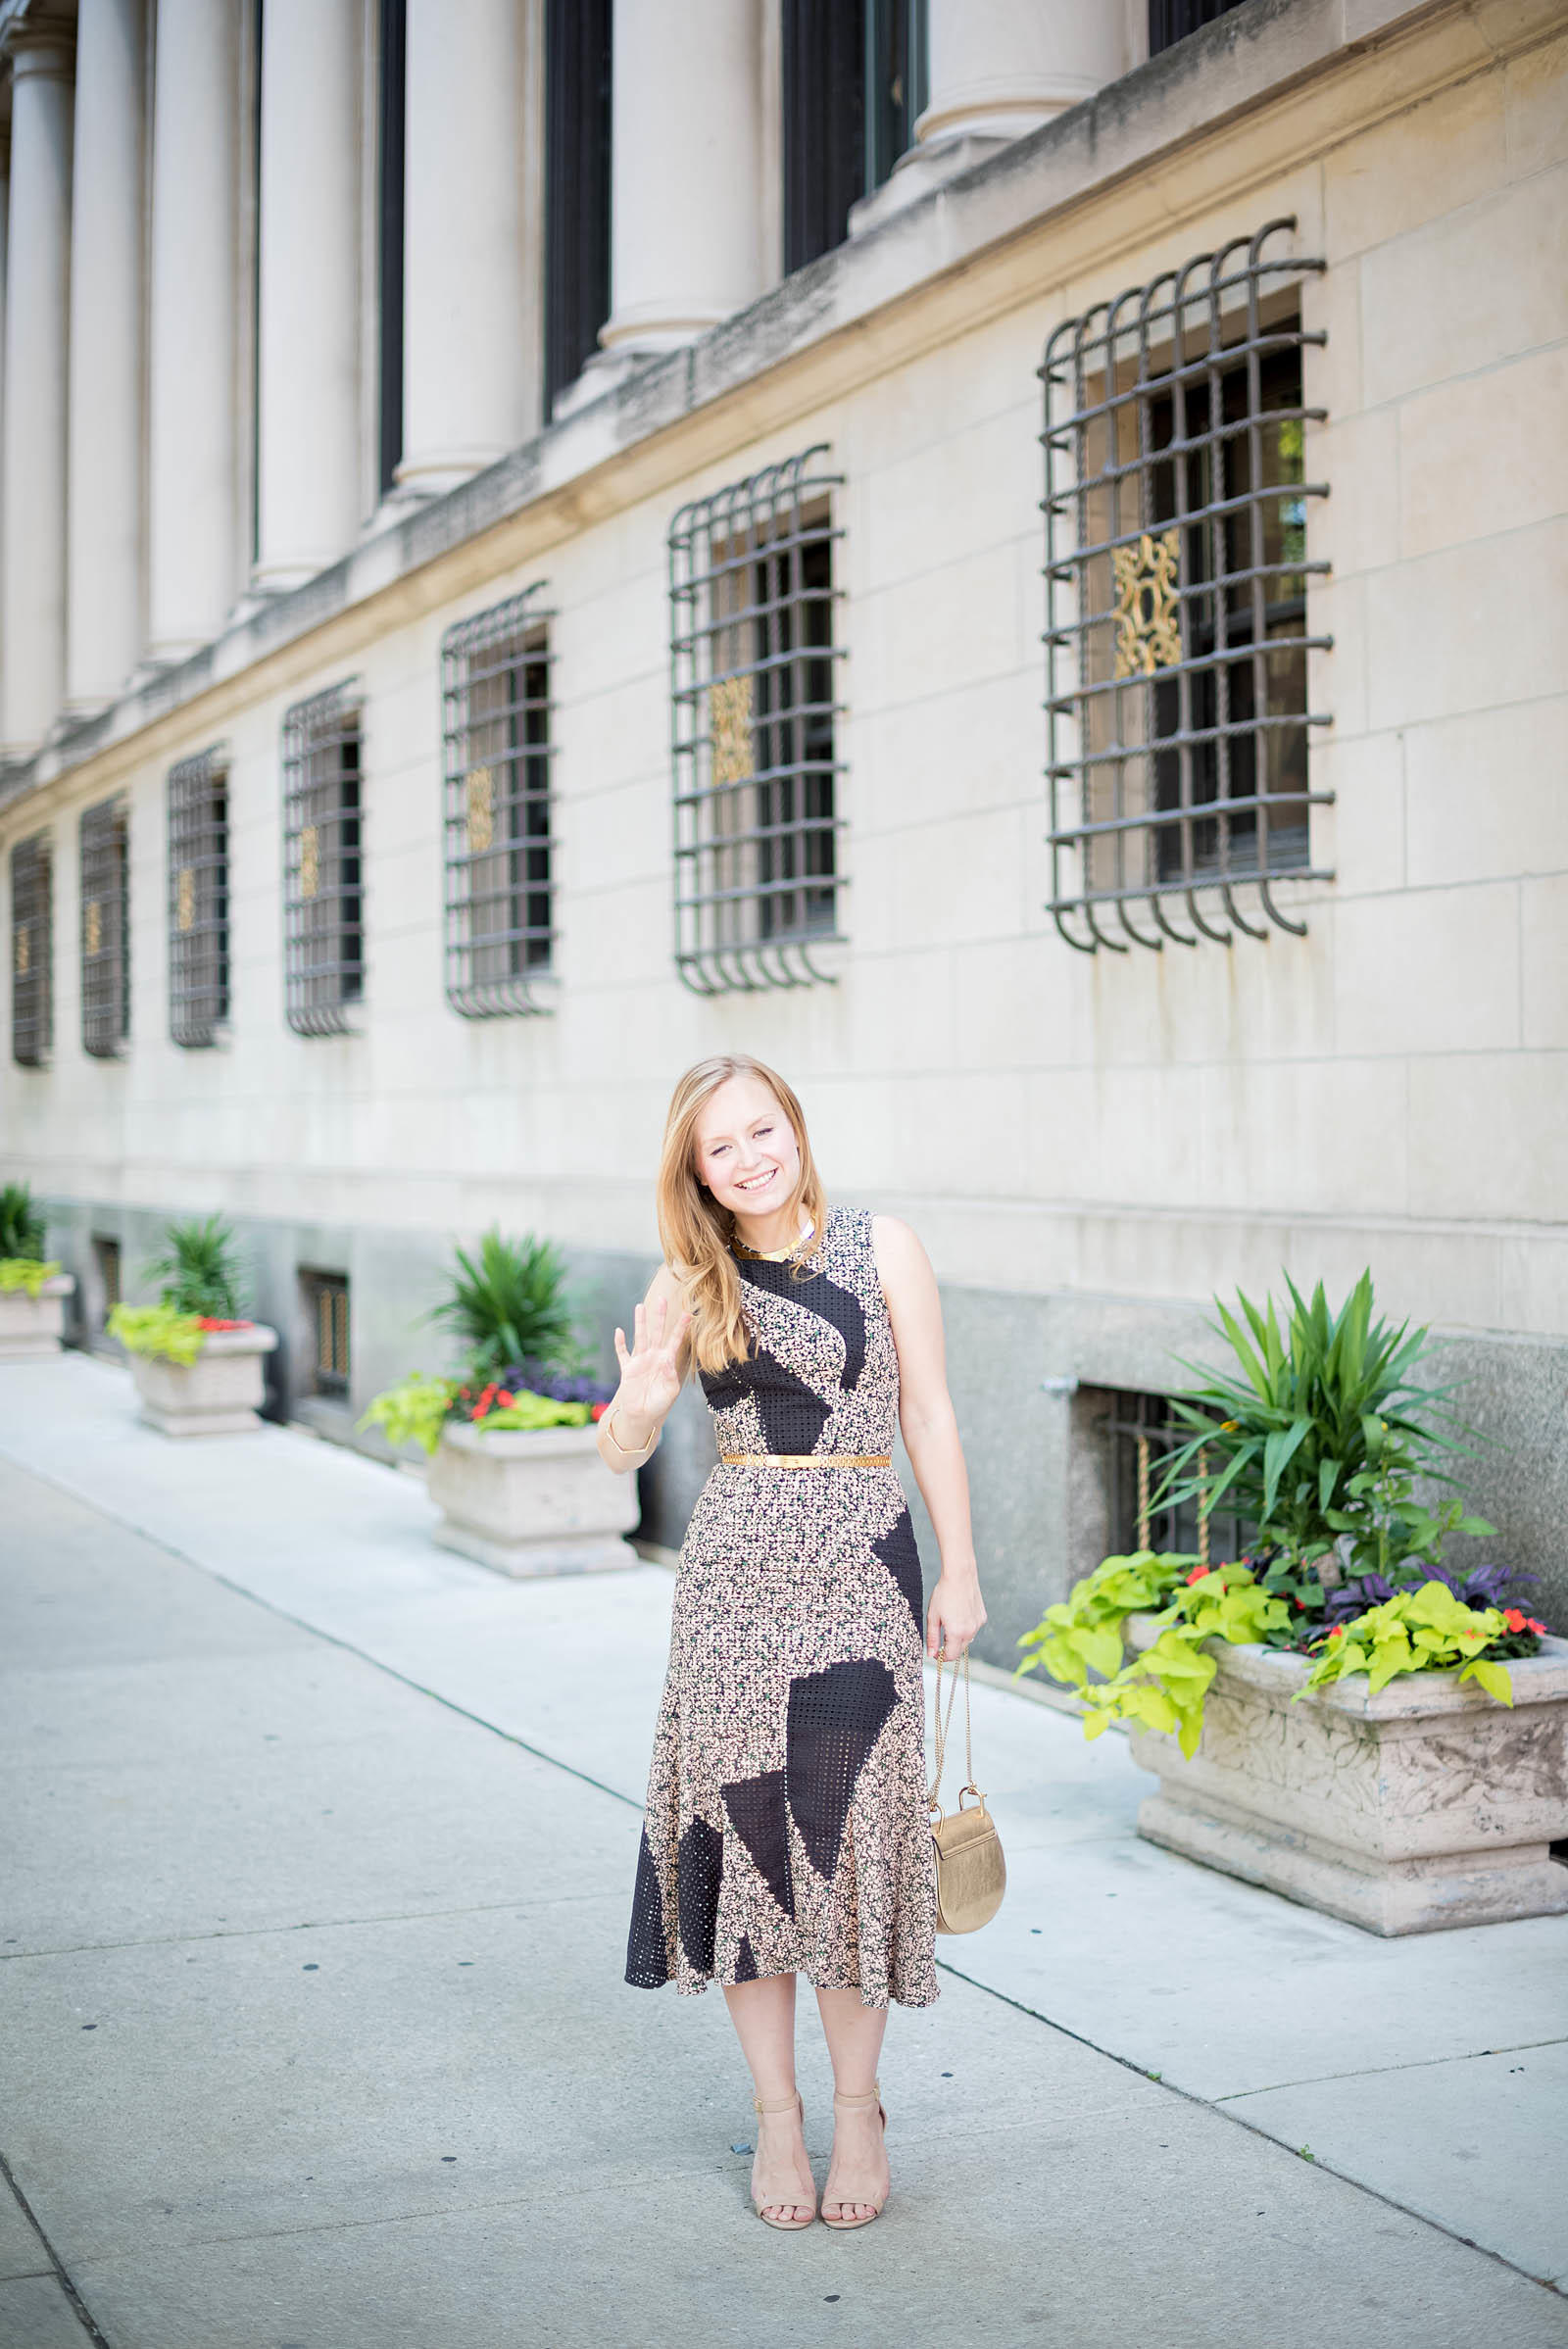 Rent the Runway Outfit Cedric Charlier Chloe Reiss